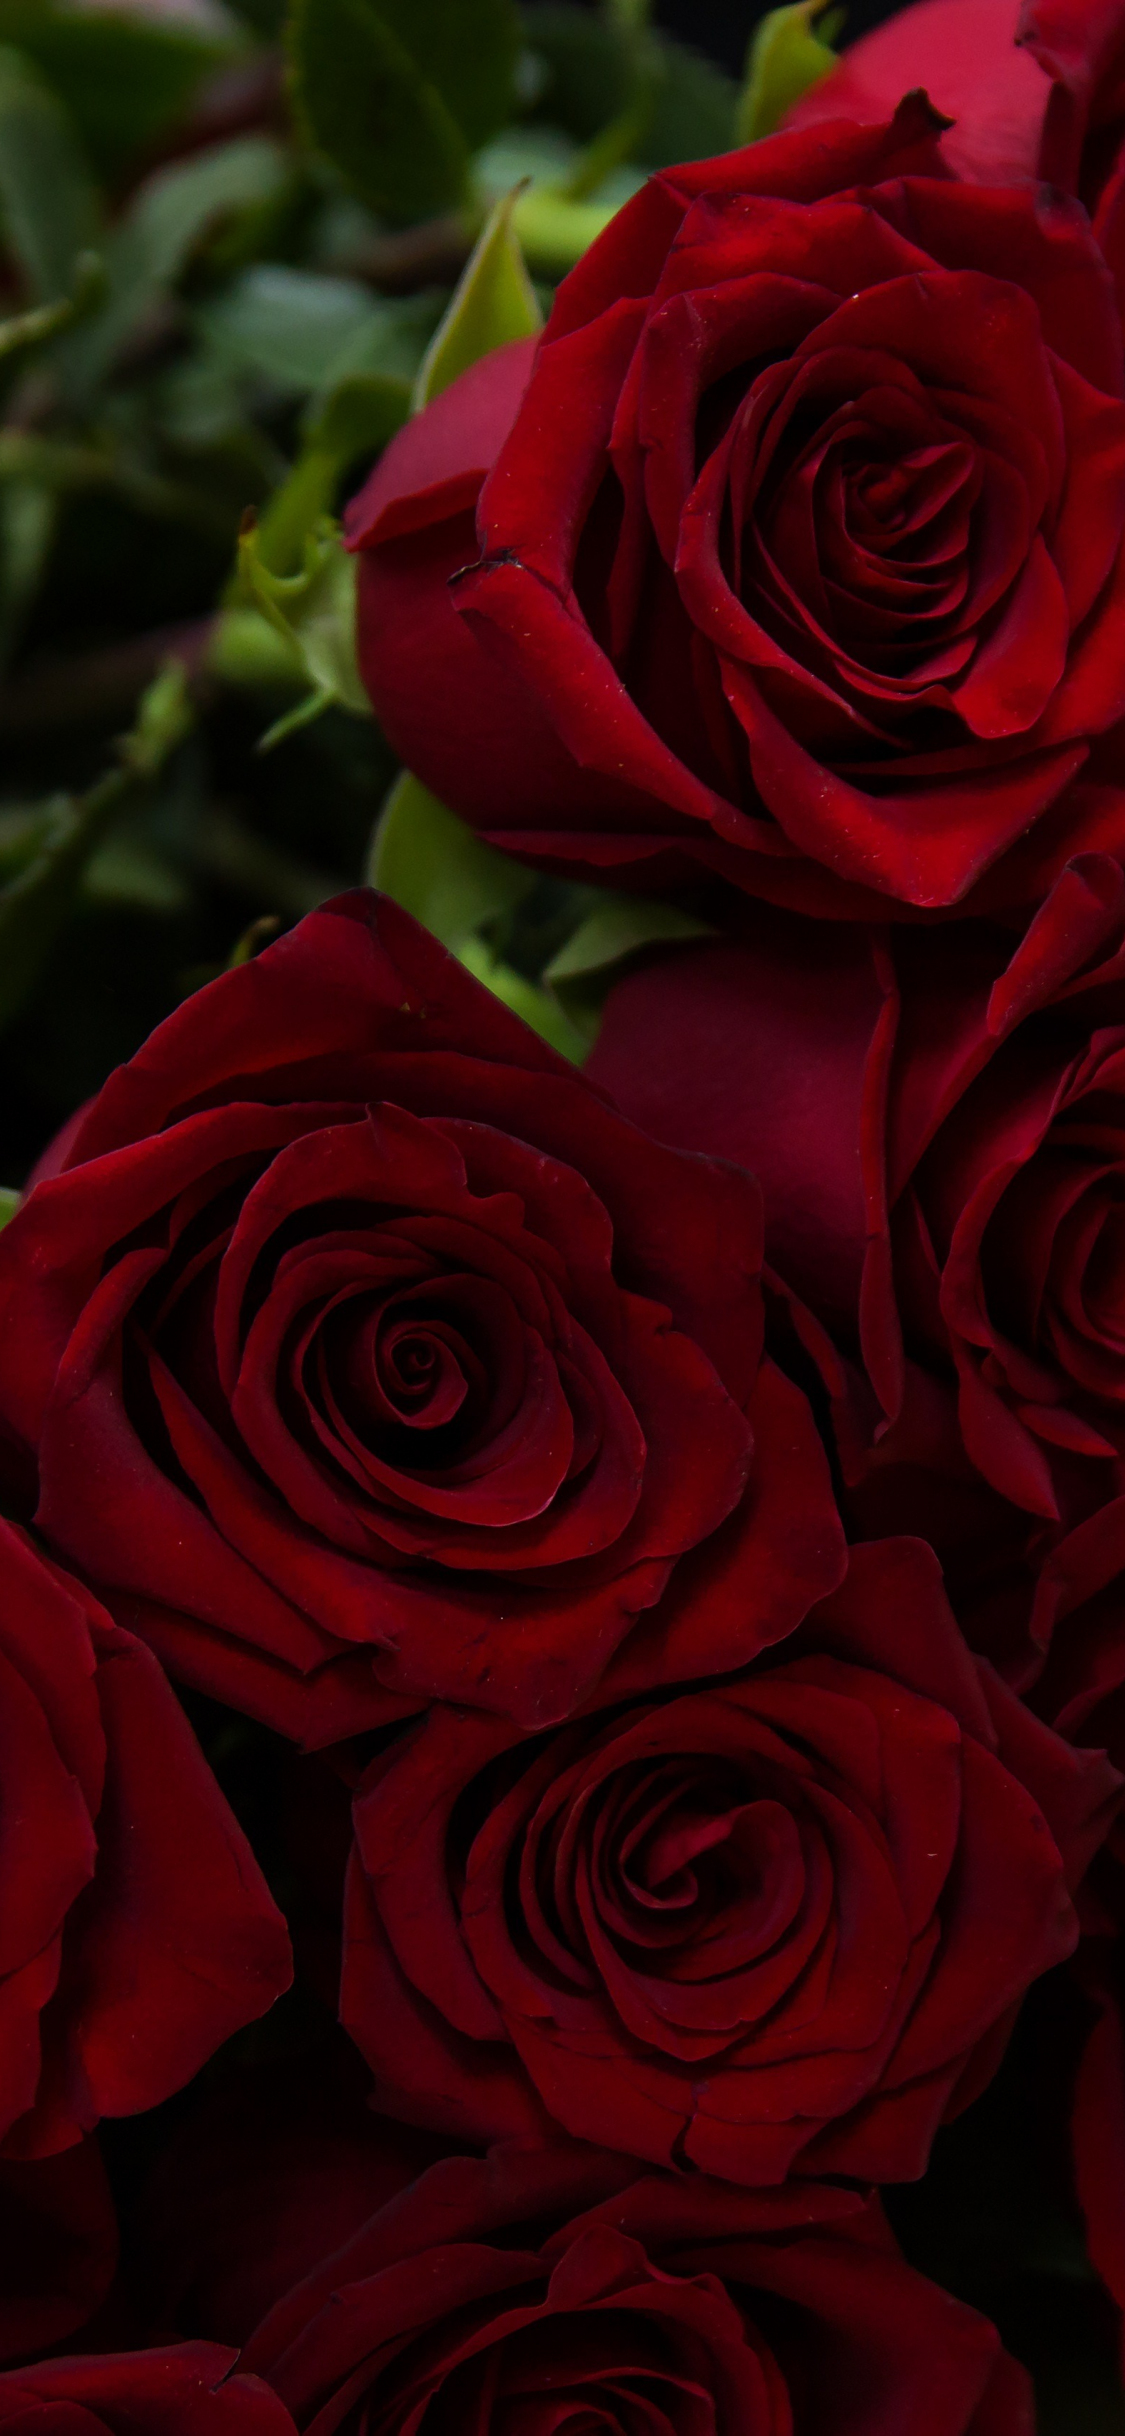 Download 1125x2436 Wallpaper Beautiful Flowers Red Roses Iphone X